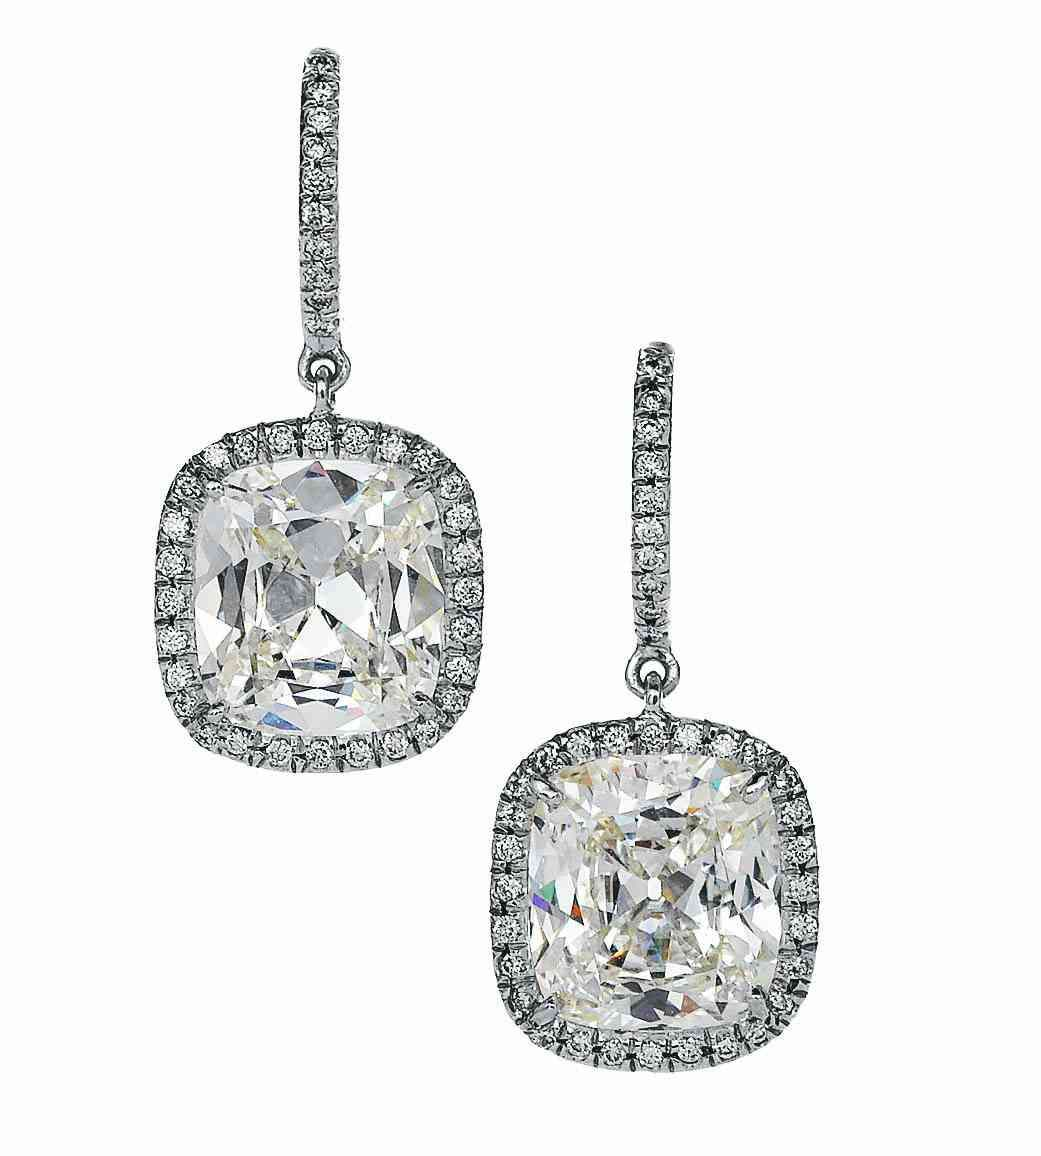 7da851f6373968 ZSE002133- Ziveg 92.5 Sterling Silver Earrings made with Swarovski Zirconia   Image